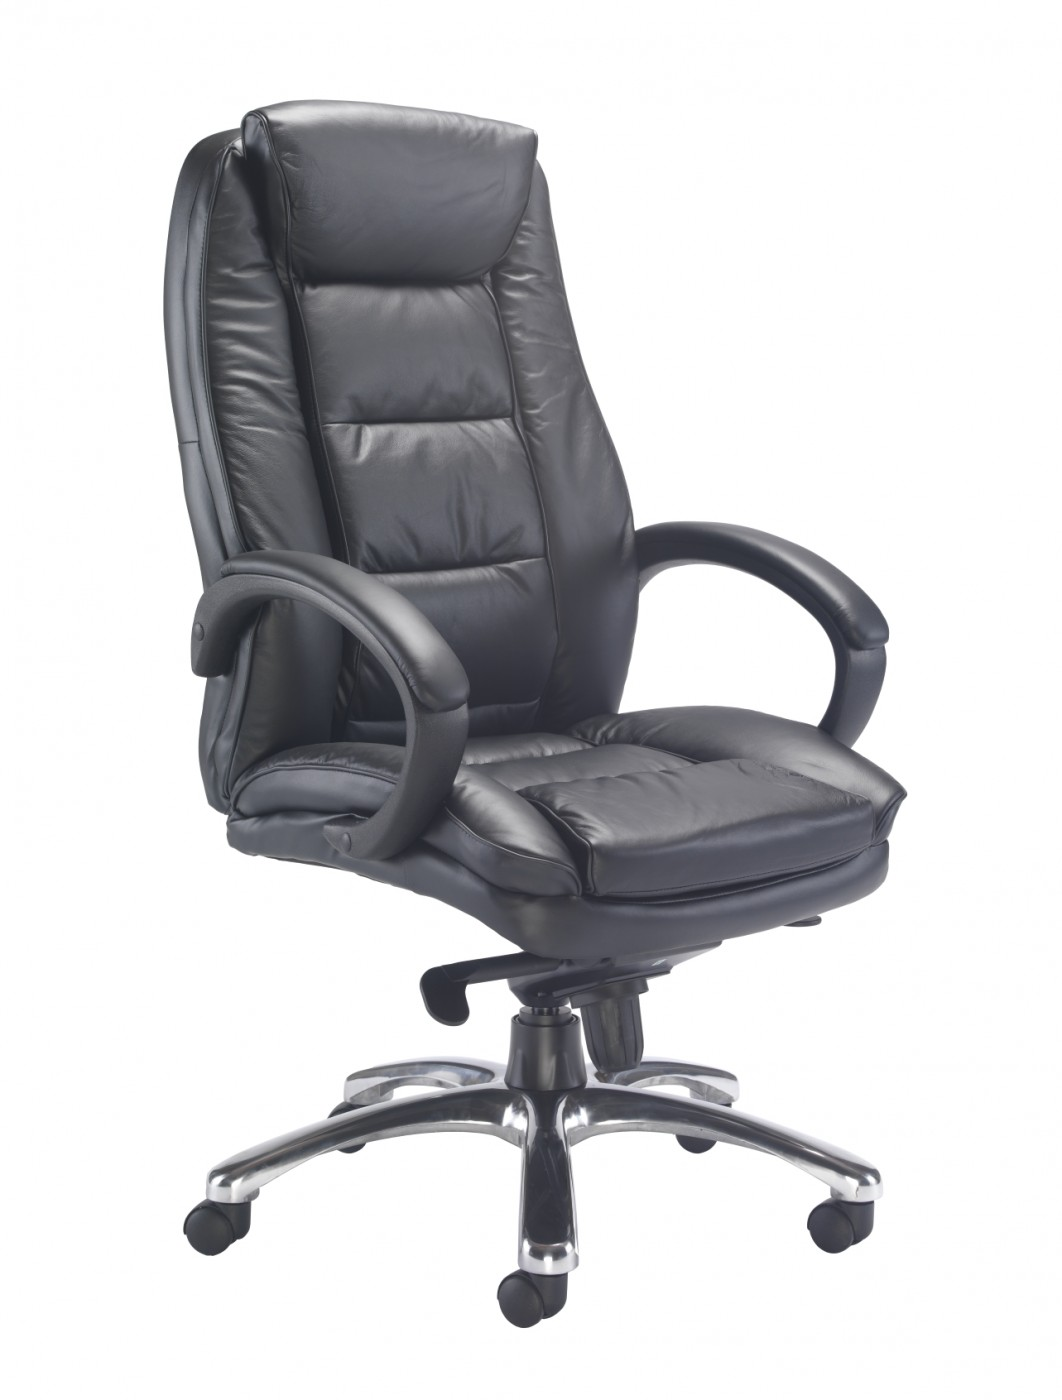 Office Chairs Leather Office Chairs Tc Montana Executive Leather Office Chair